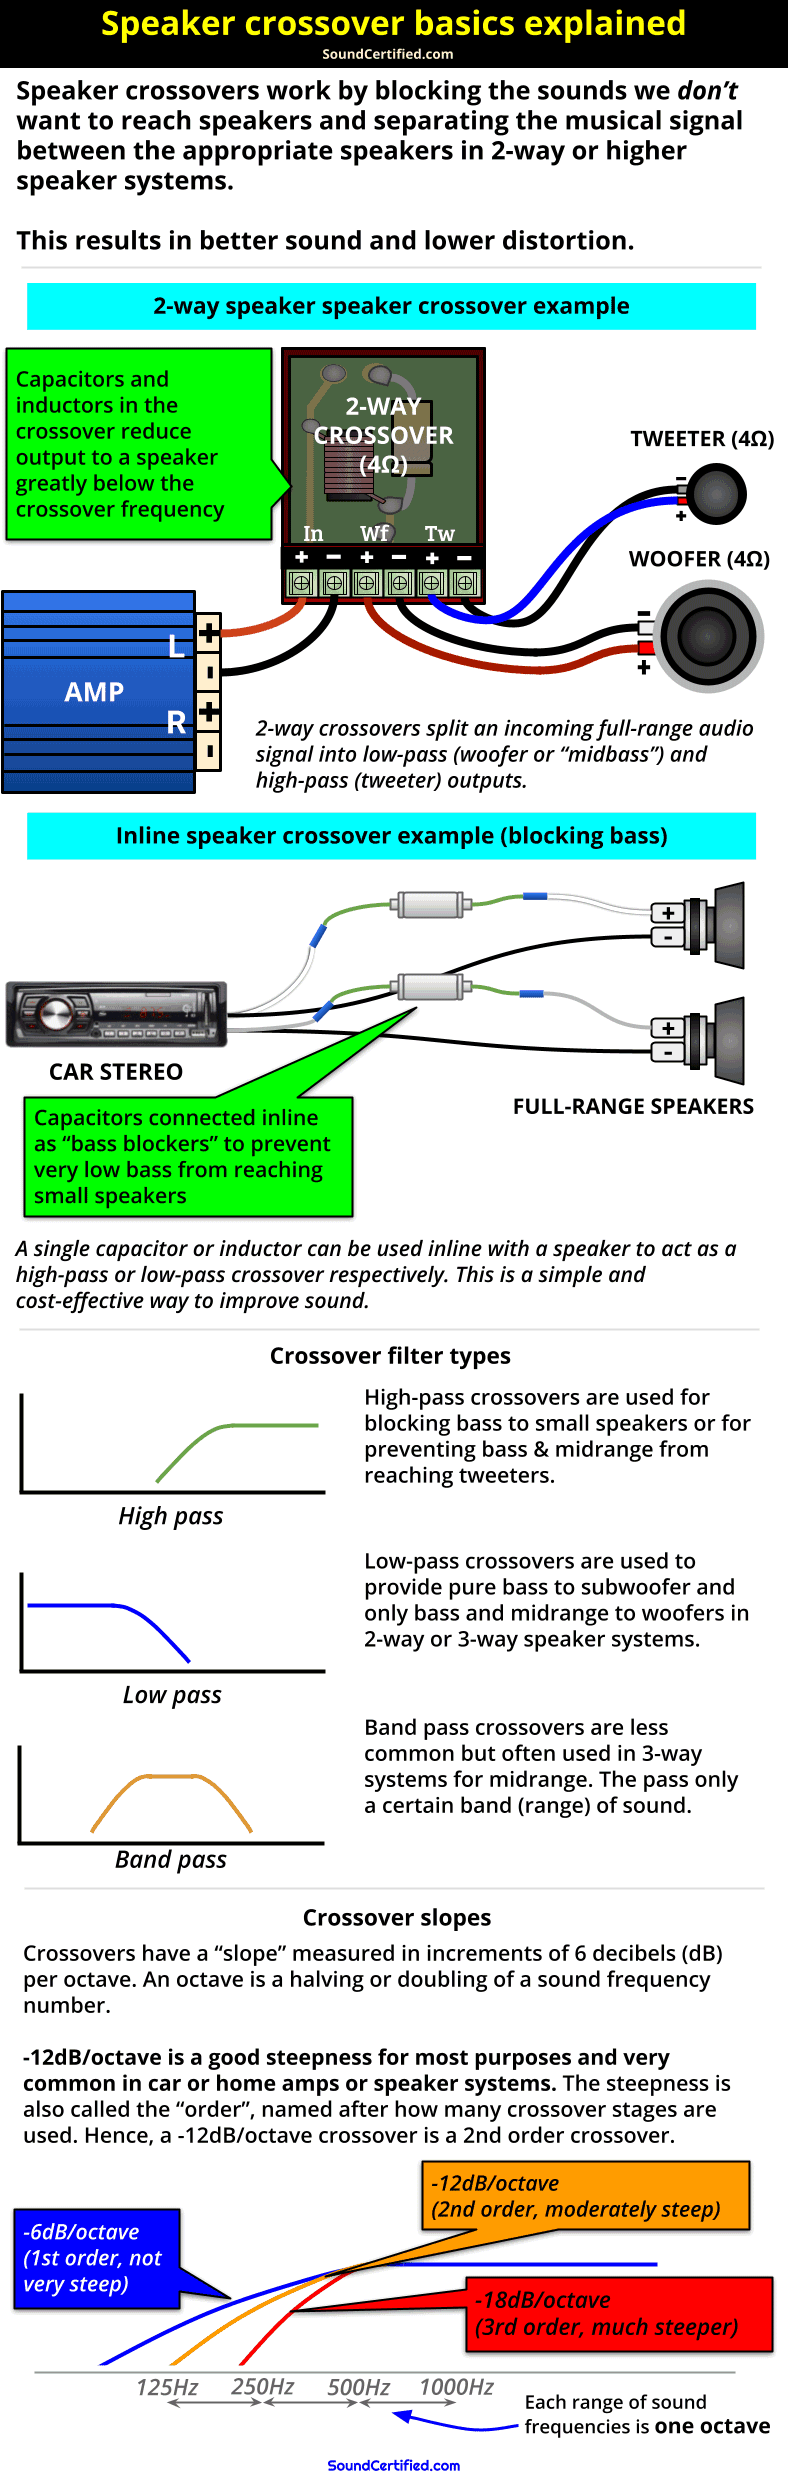 speaker crossover and crossover frequency explained diagram